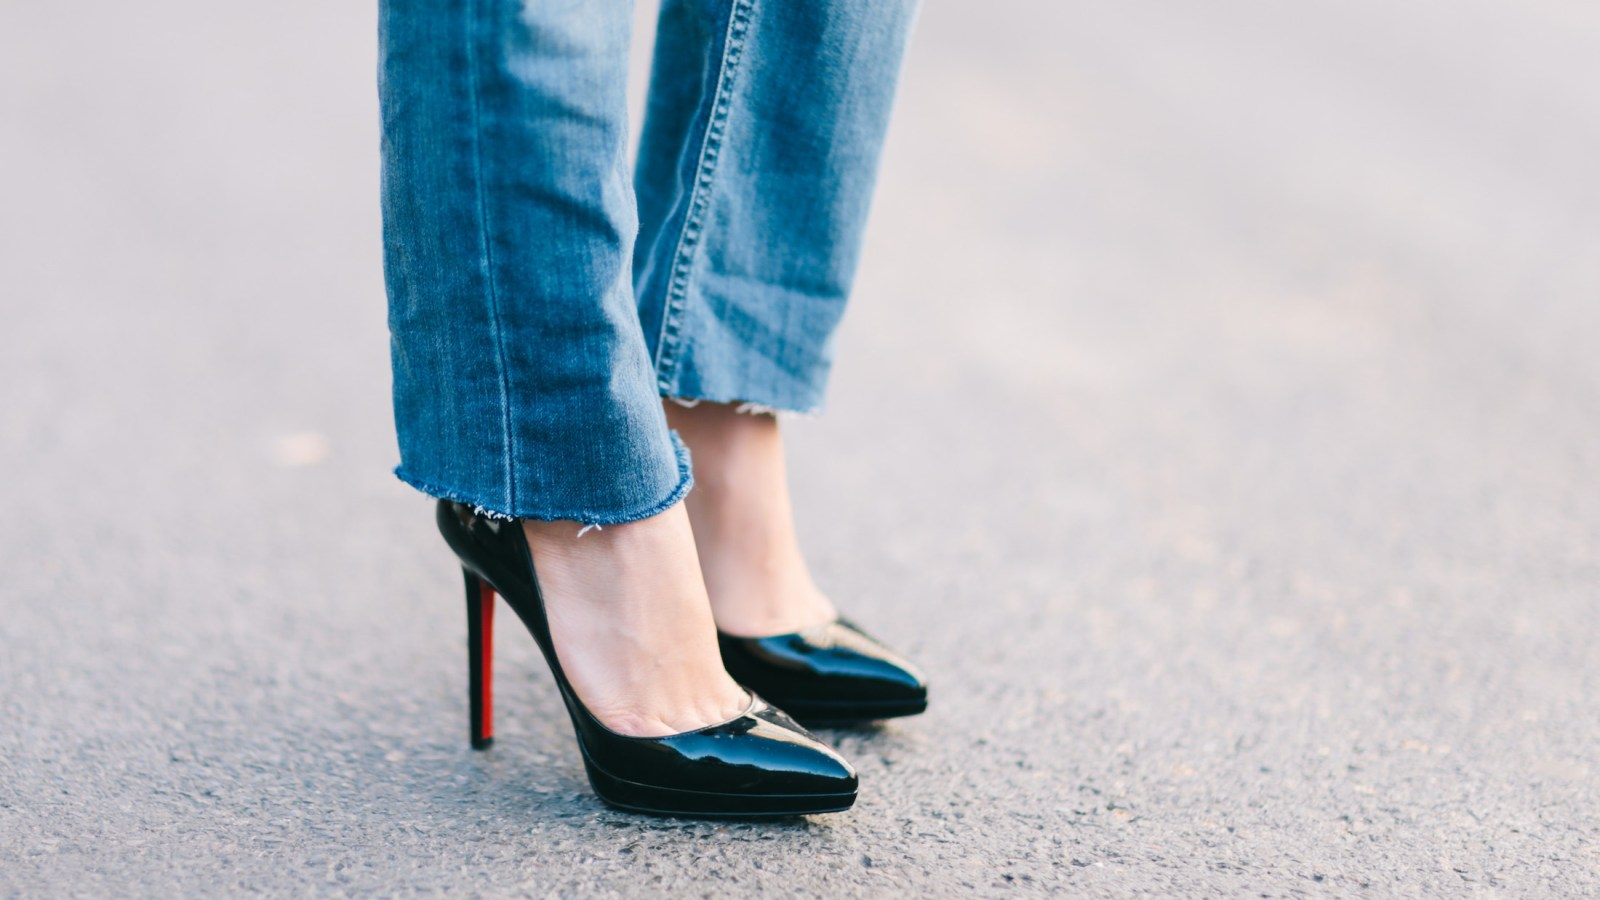 719f7ef2d35 Christian Louboutin Pumps Are at the Top of Our Holiday Wish List